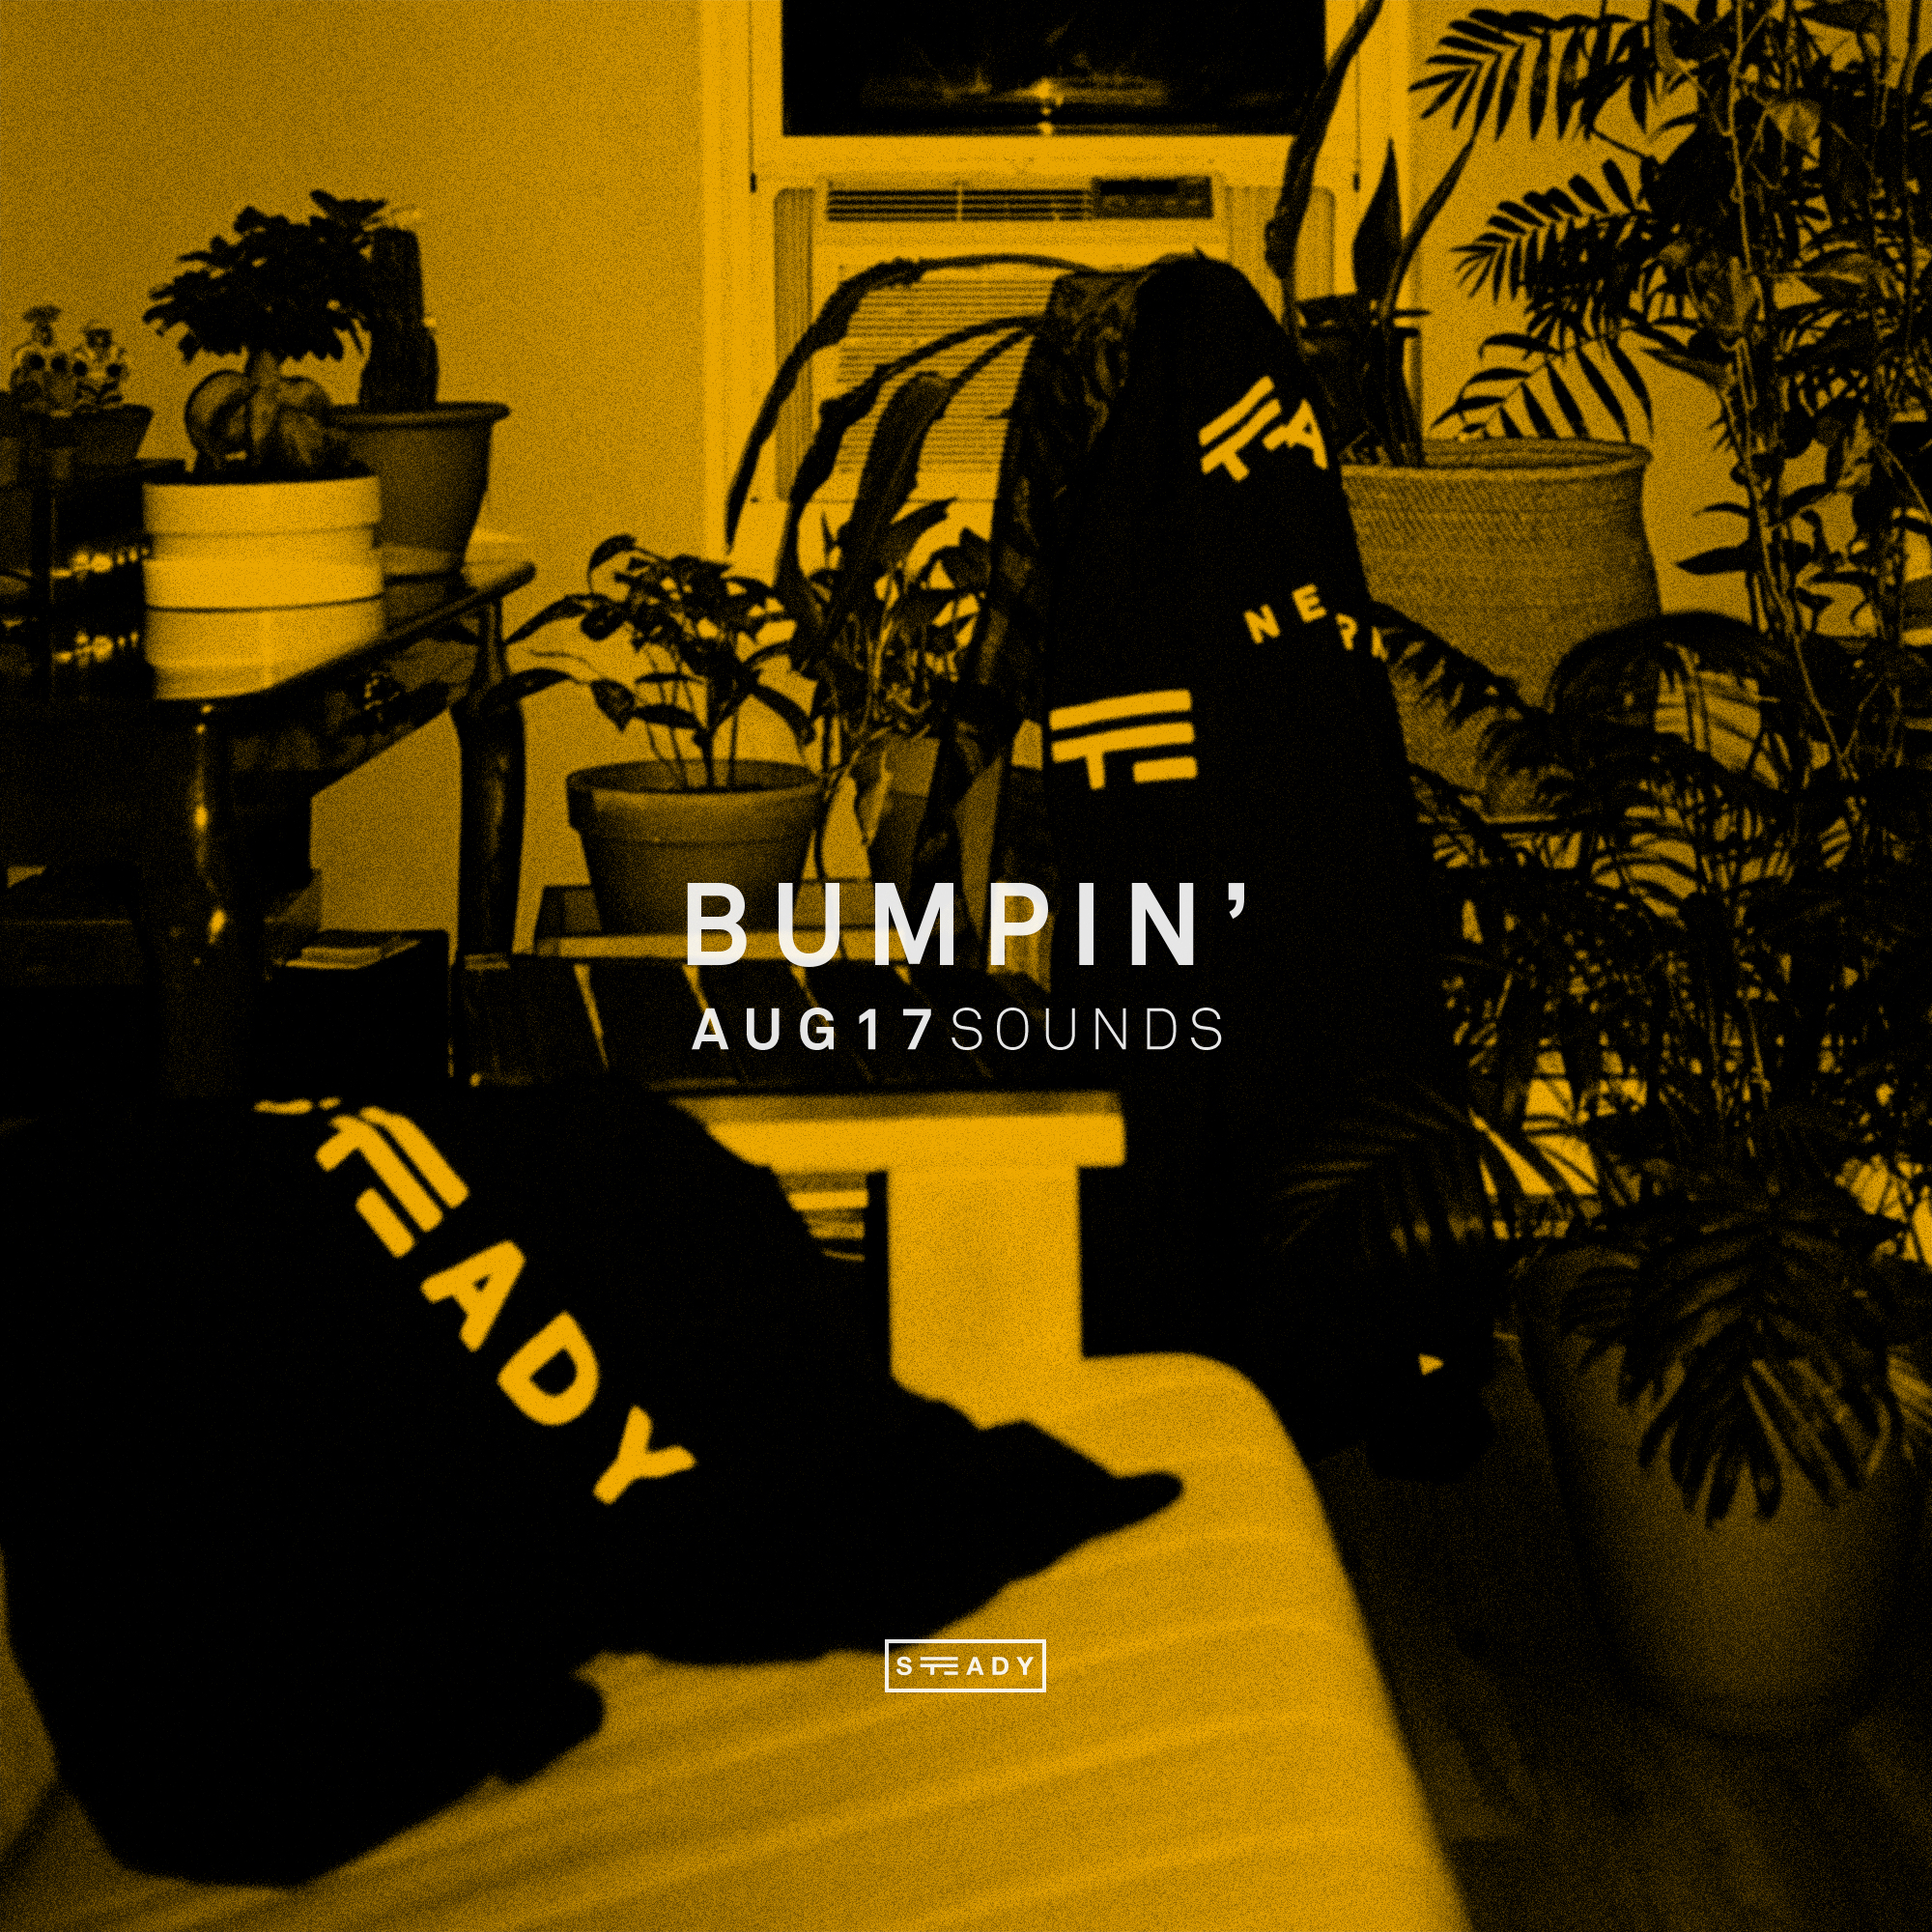 STEADY BUMPIN': AUG17 SOUNDS